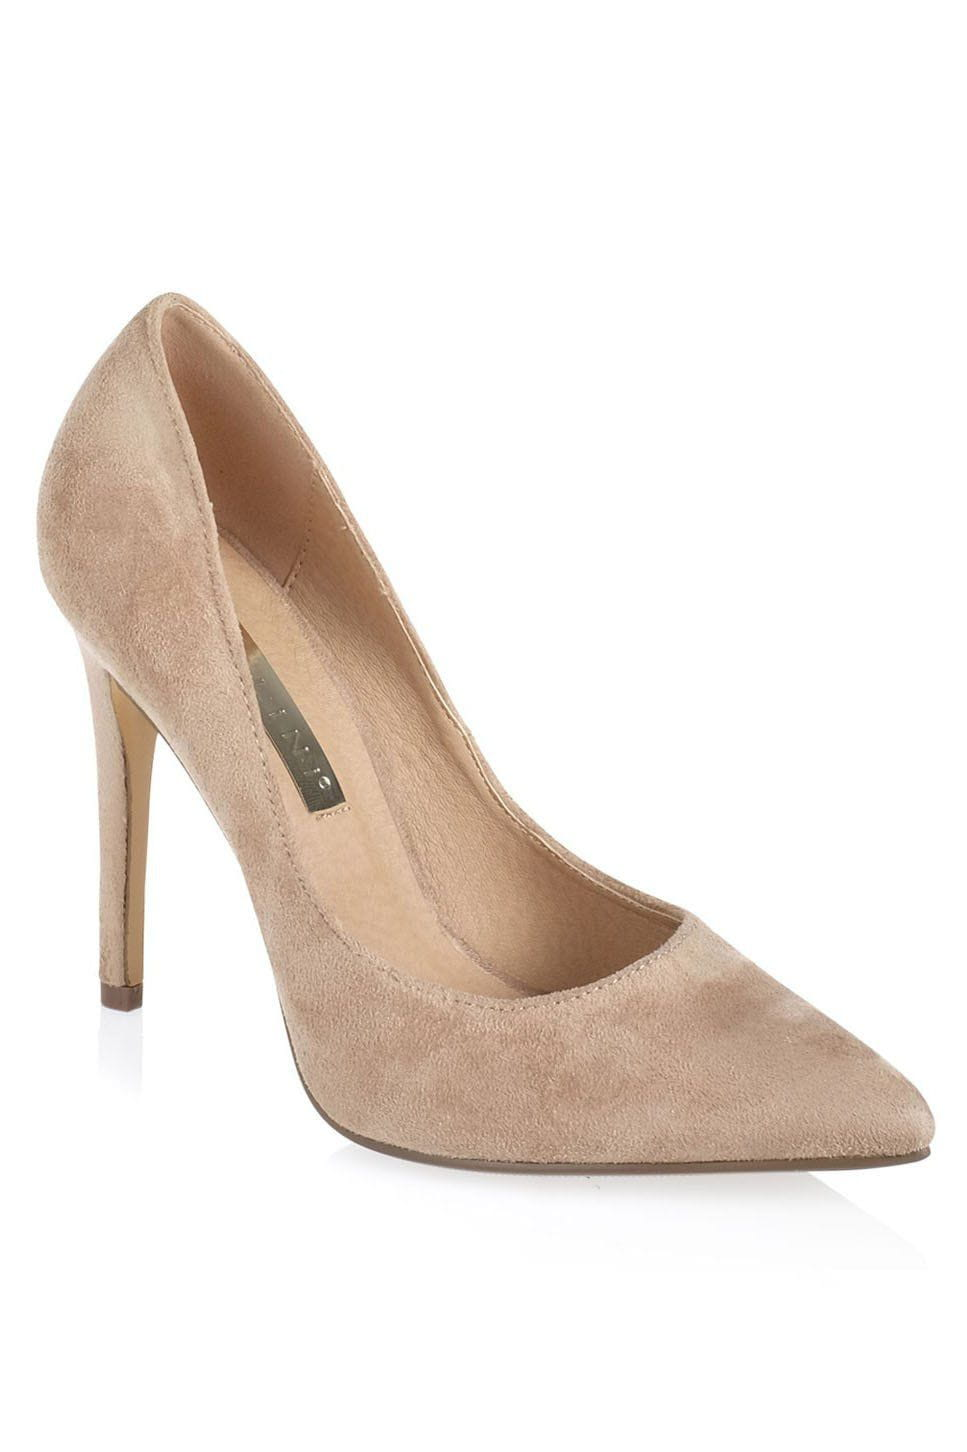 Nude Pointed Heels MbRhNHP4